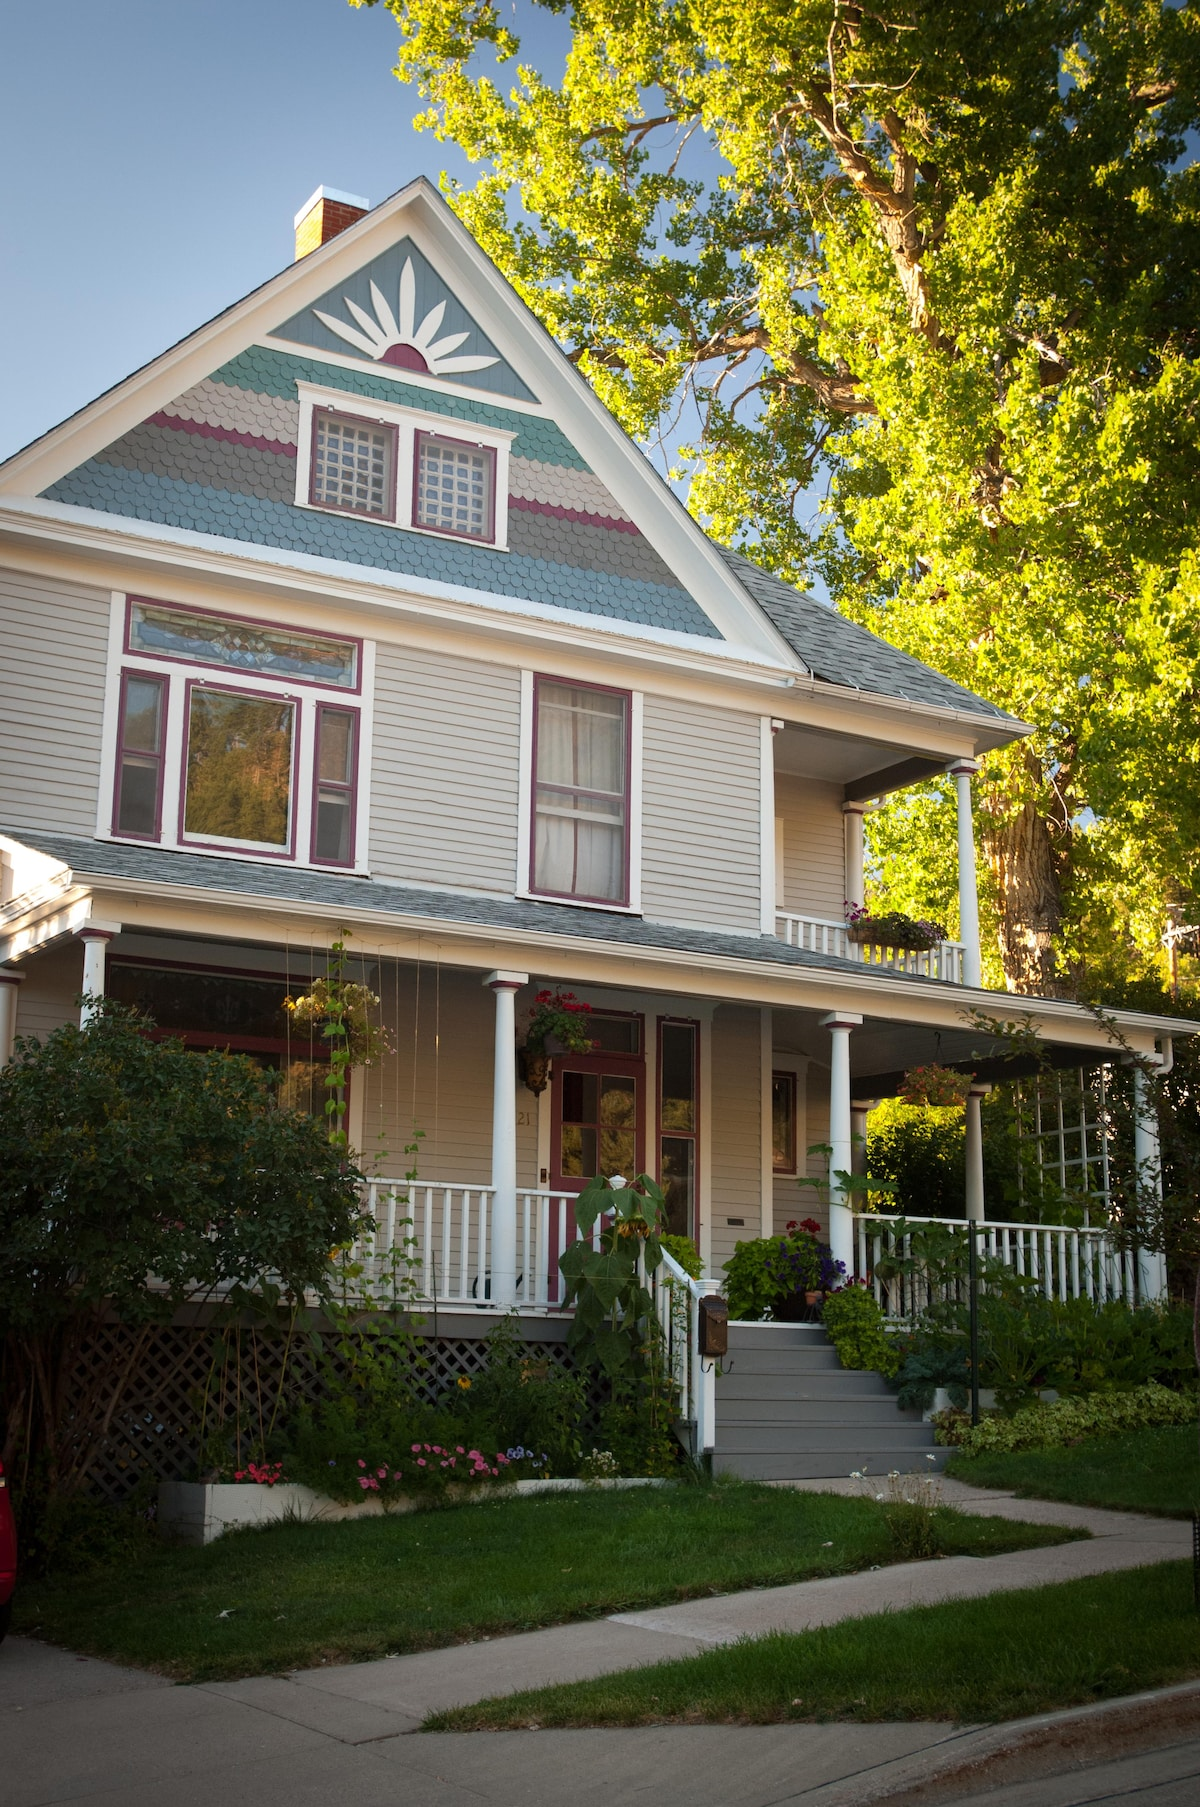 The house was designed by a local architect in the Queen Anne style.